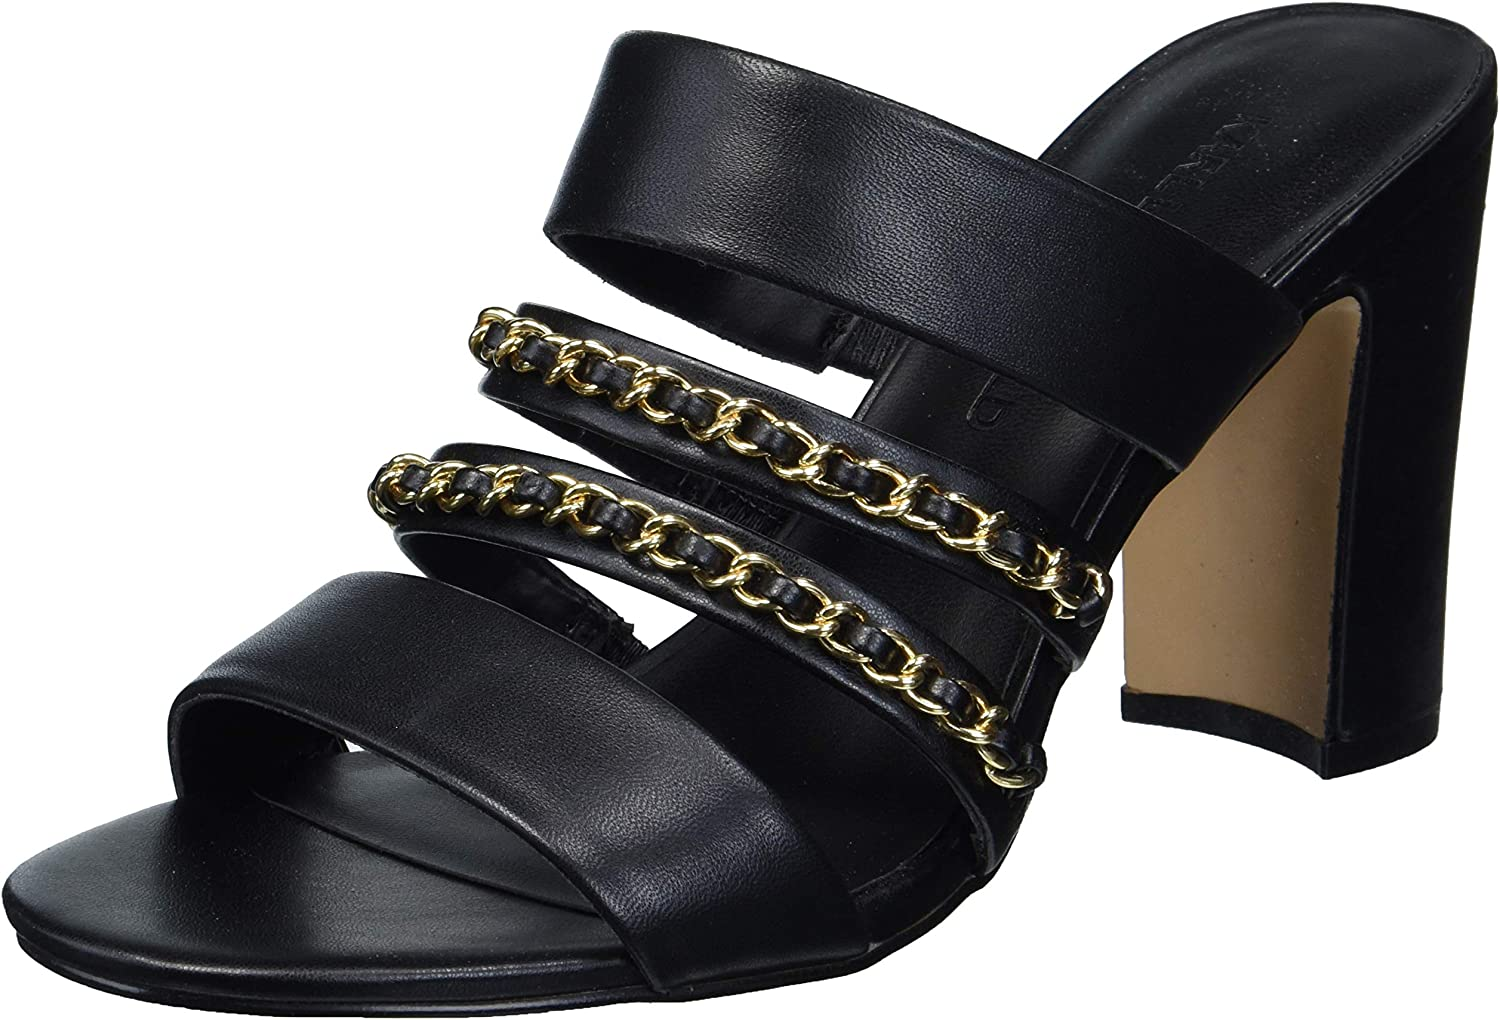 Gifts Karl Lagerfeld Paris Women's Cambrie Heeled Ranking TOP9 on Sandal Slip